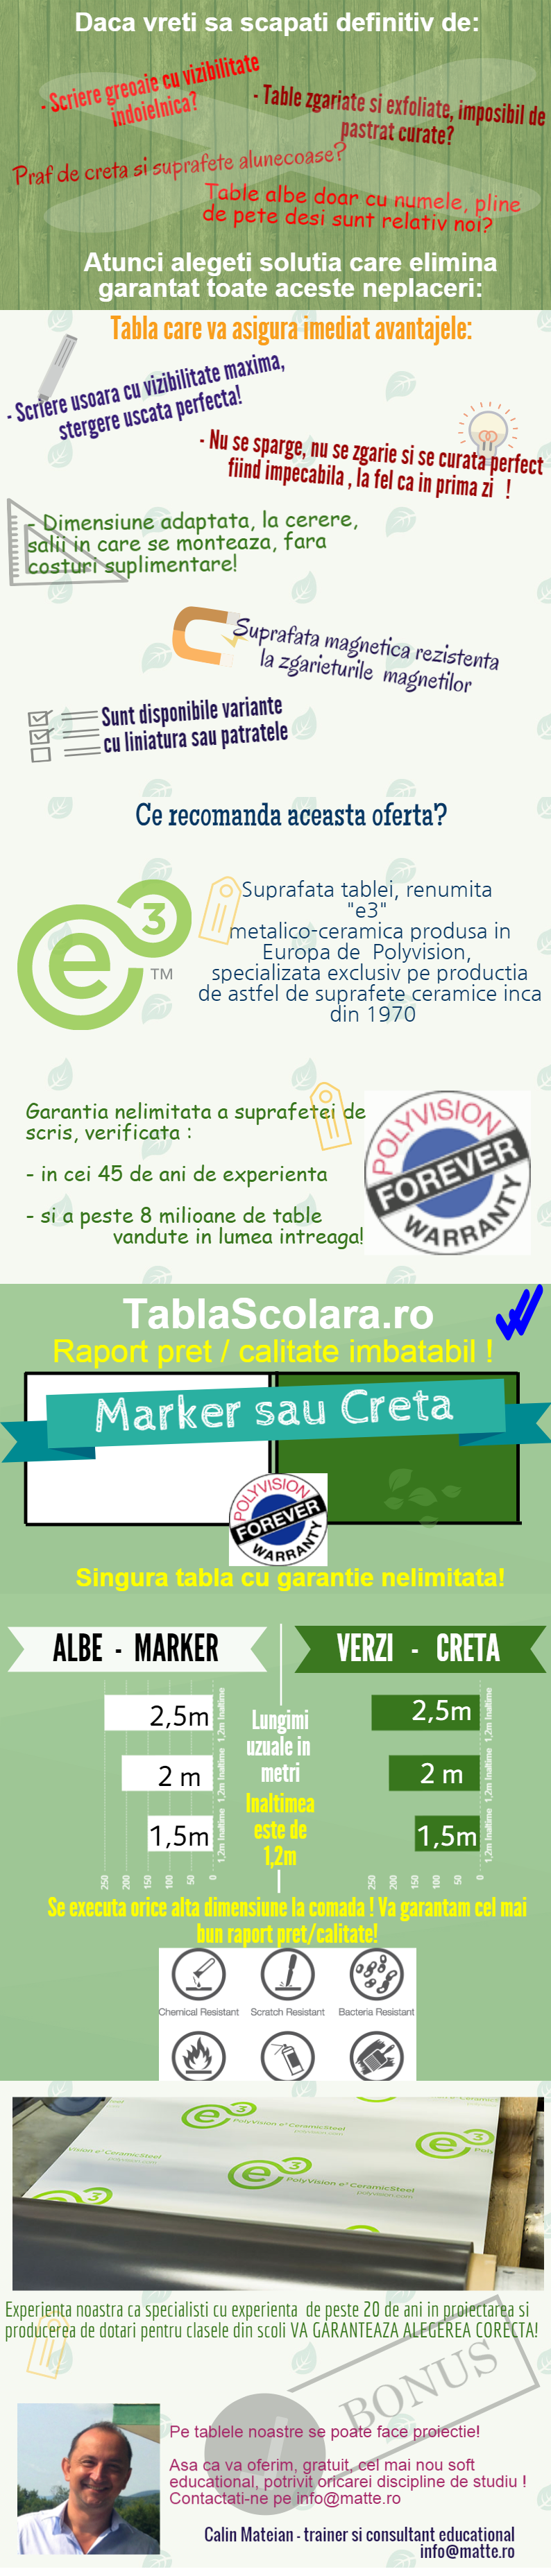 Table scolare de calitate